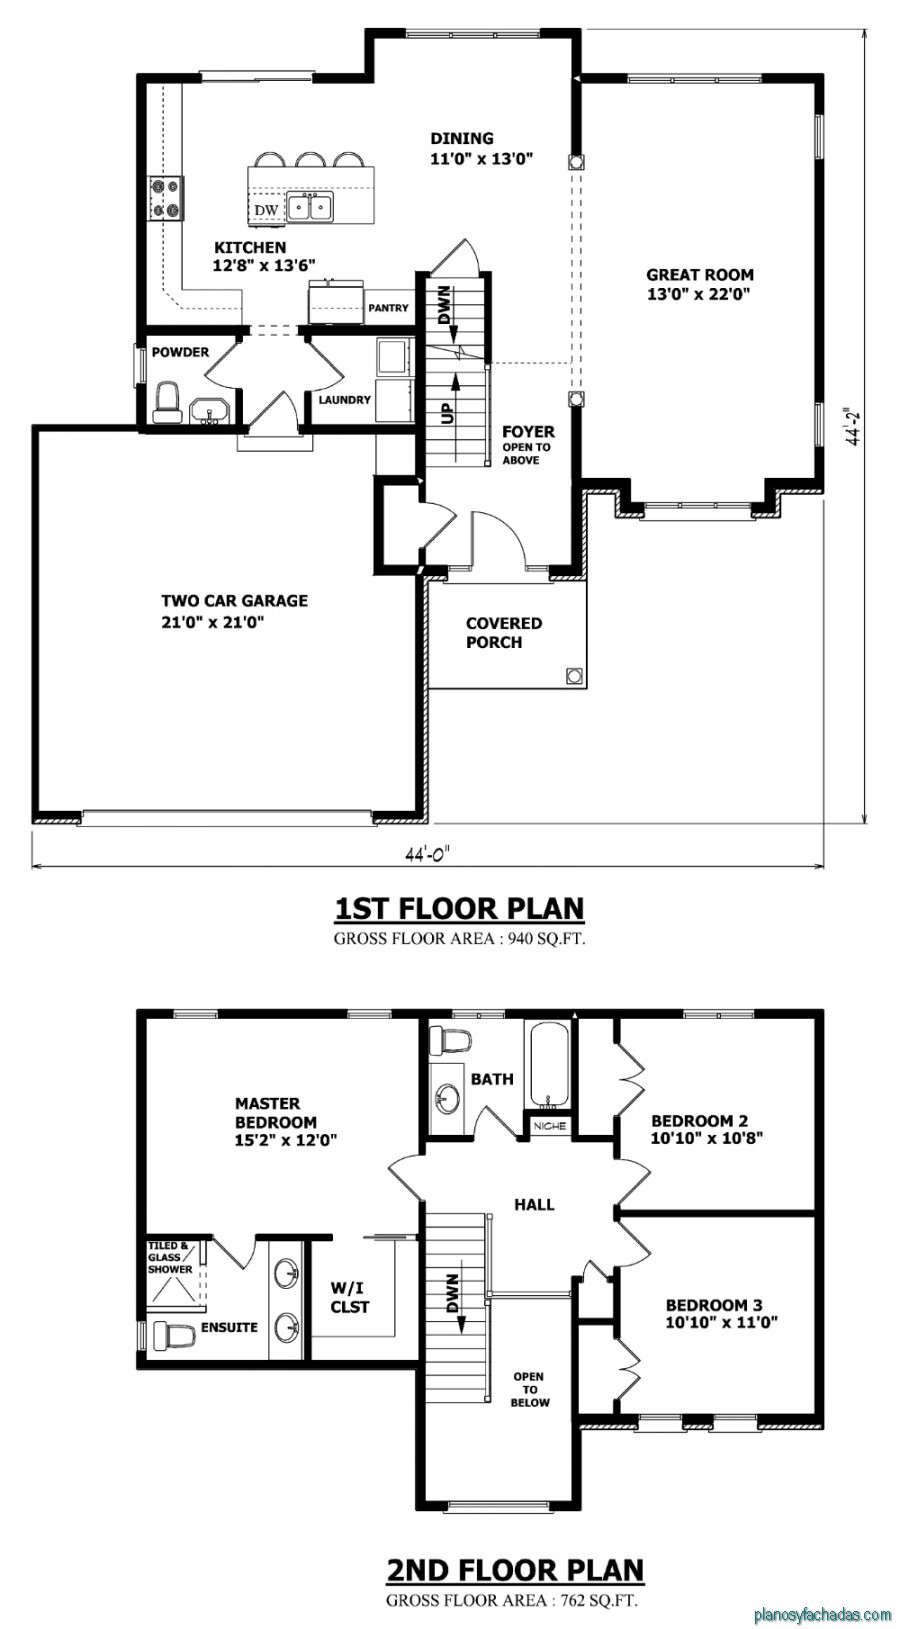 15 planos de casas peque as de dos pisos planos y for Small two story house plans with garage